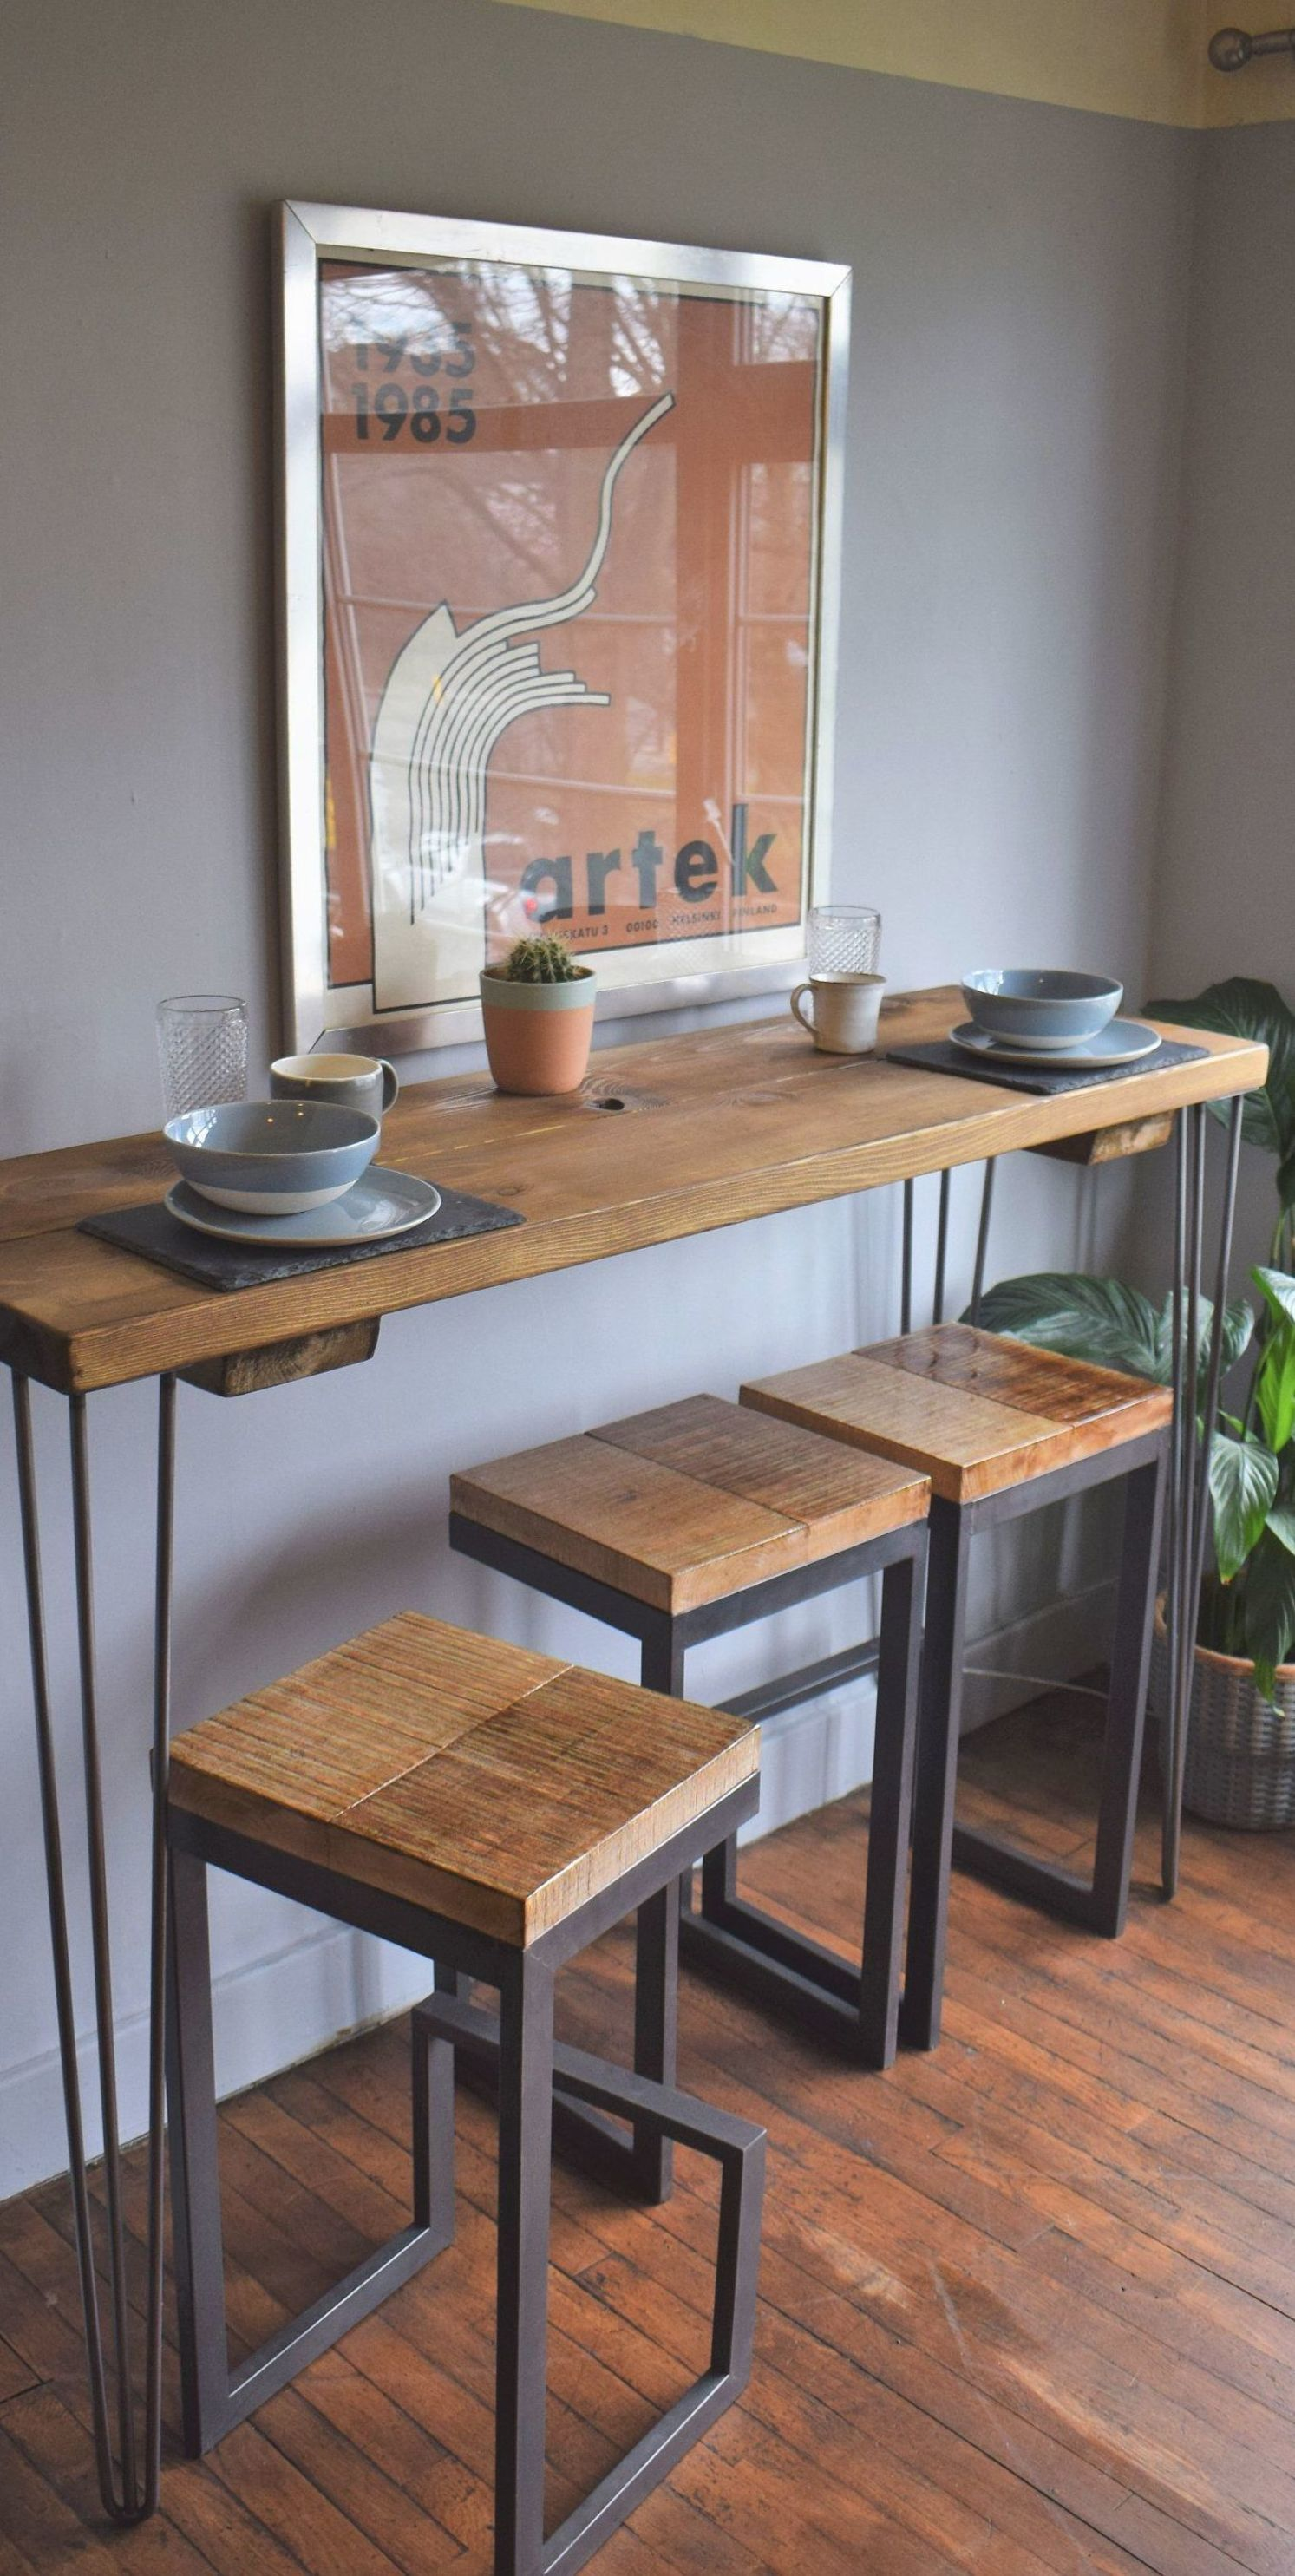 Excited to share this item from my #etsy shop: Tall Reclaimed wood Industrial Hairpin Legs Kitchen Breakfast Bar & Stools  - delivery possible #kitchentable #diningroomtable #table #hairpinlegs #midcenturymodern #midcentury